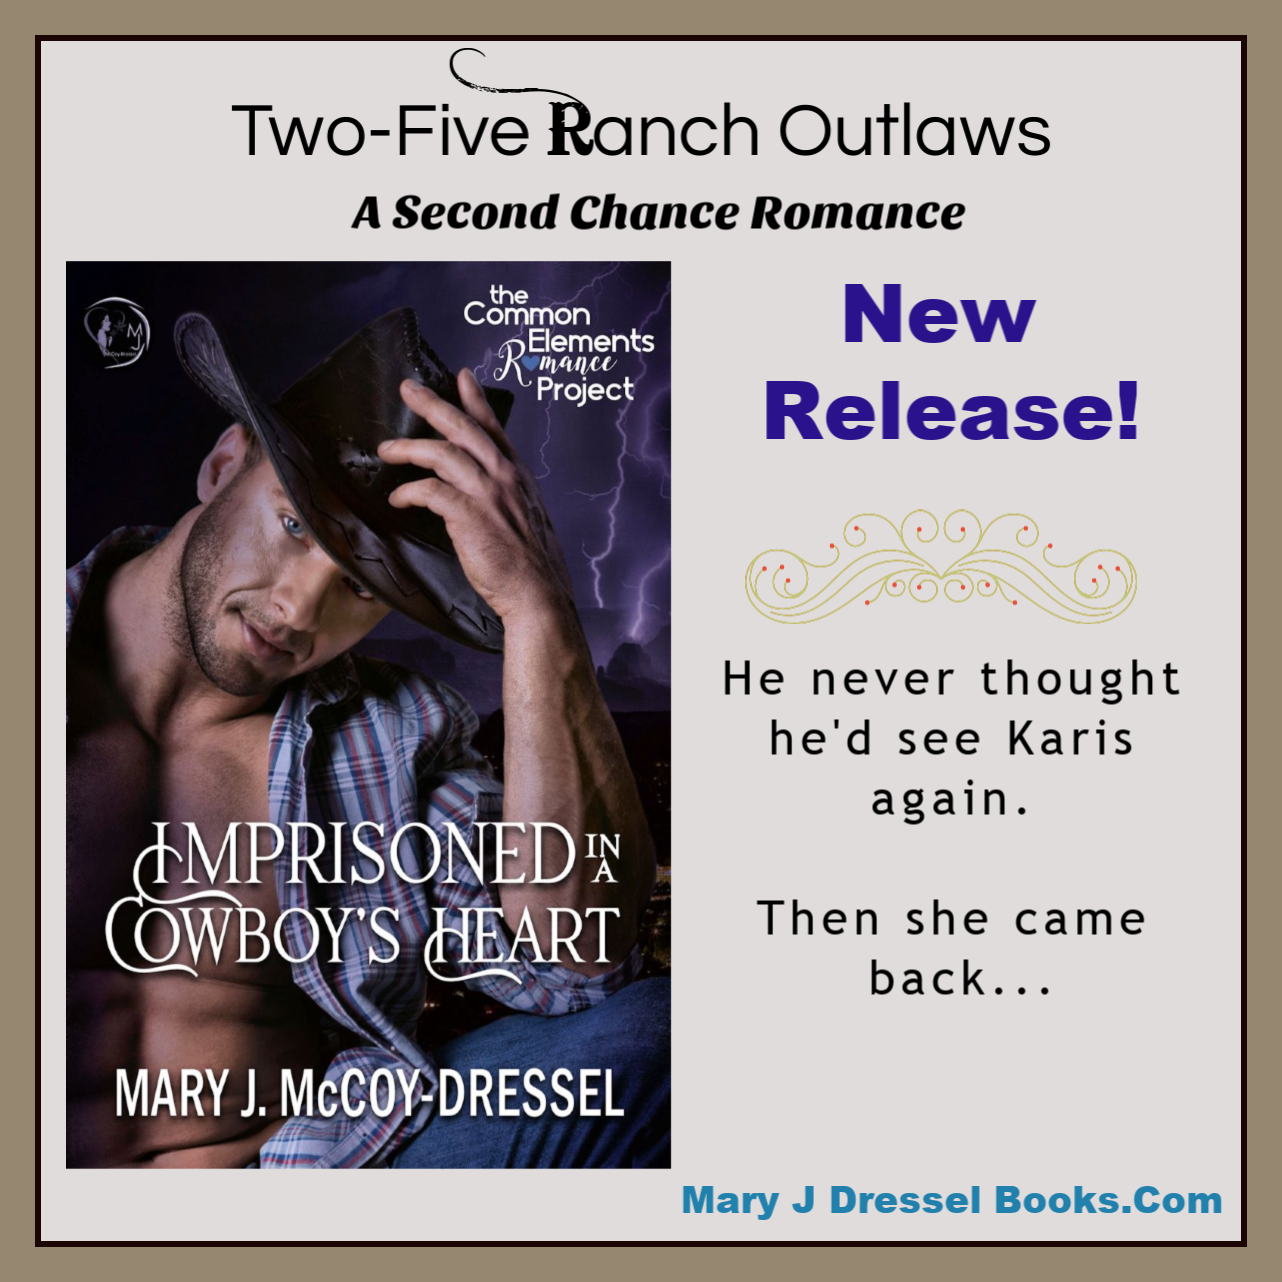 contemporary western romance, Mary J McCoy-Dressel, Two-Five Ranch Outlaws Book 1,